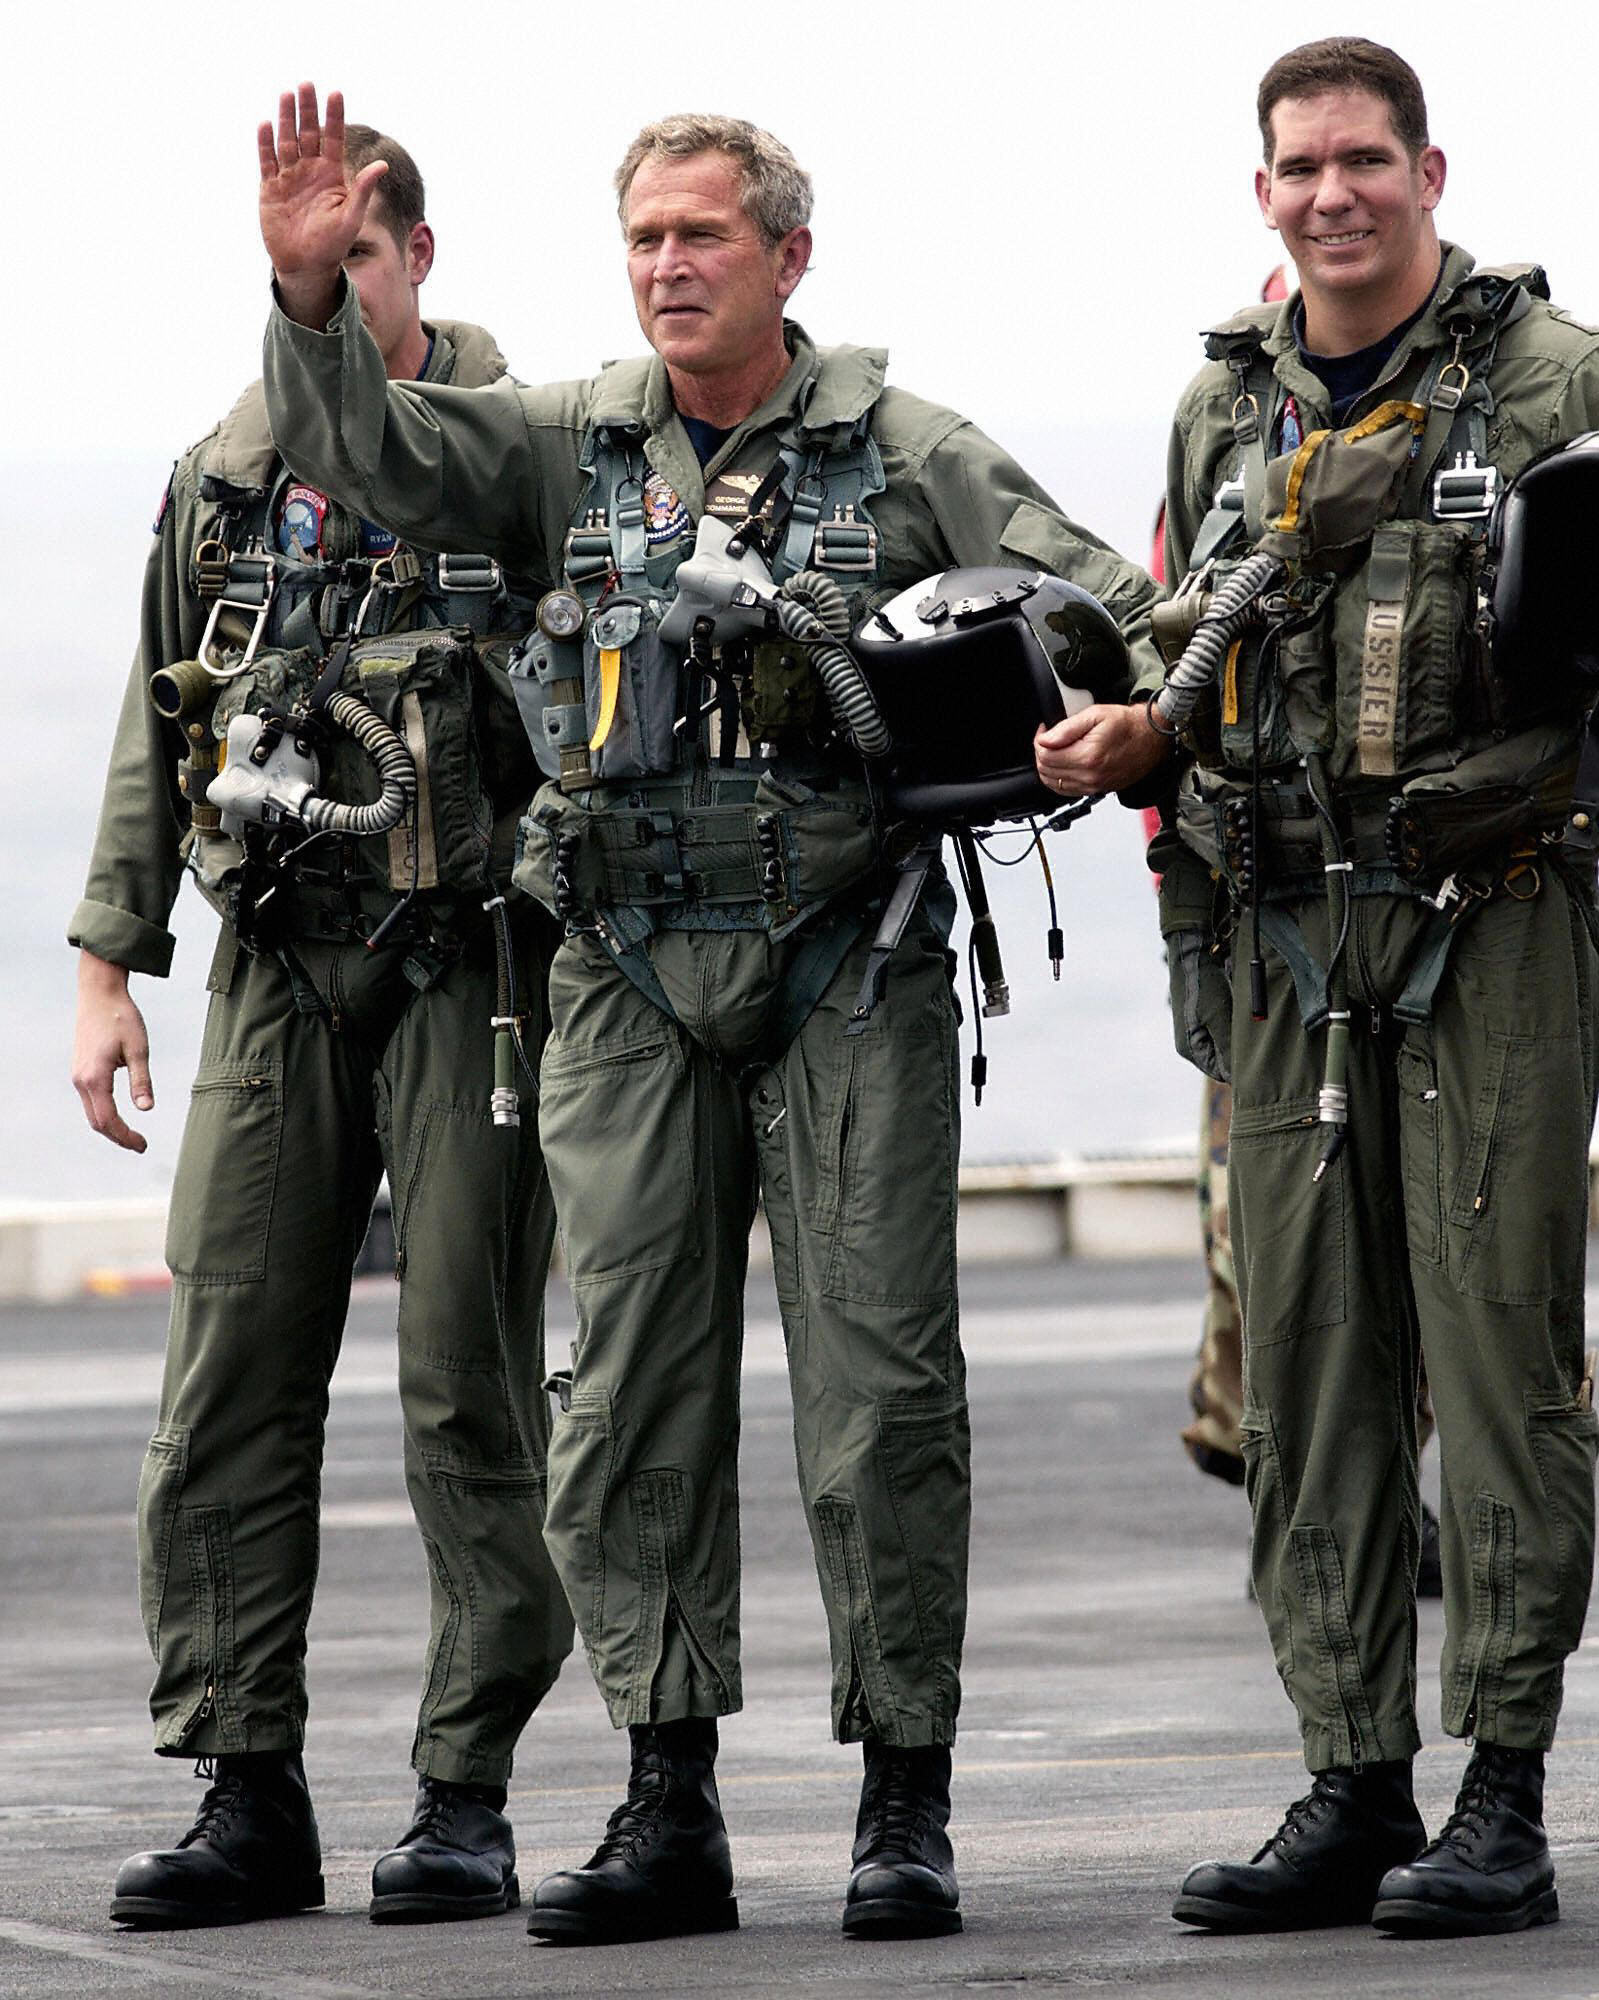 May 1, 2003, Bush lands on the aircraft carrier USS Abraham Lincoln.